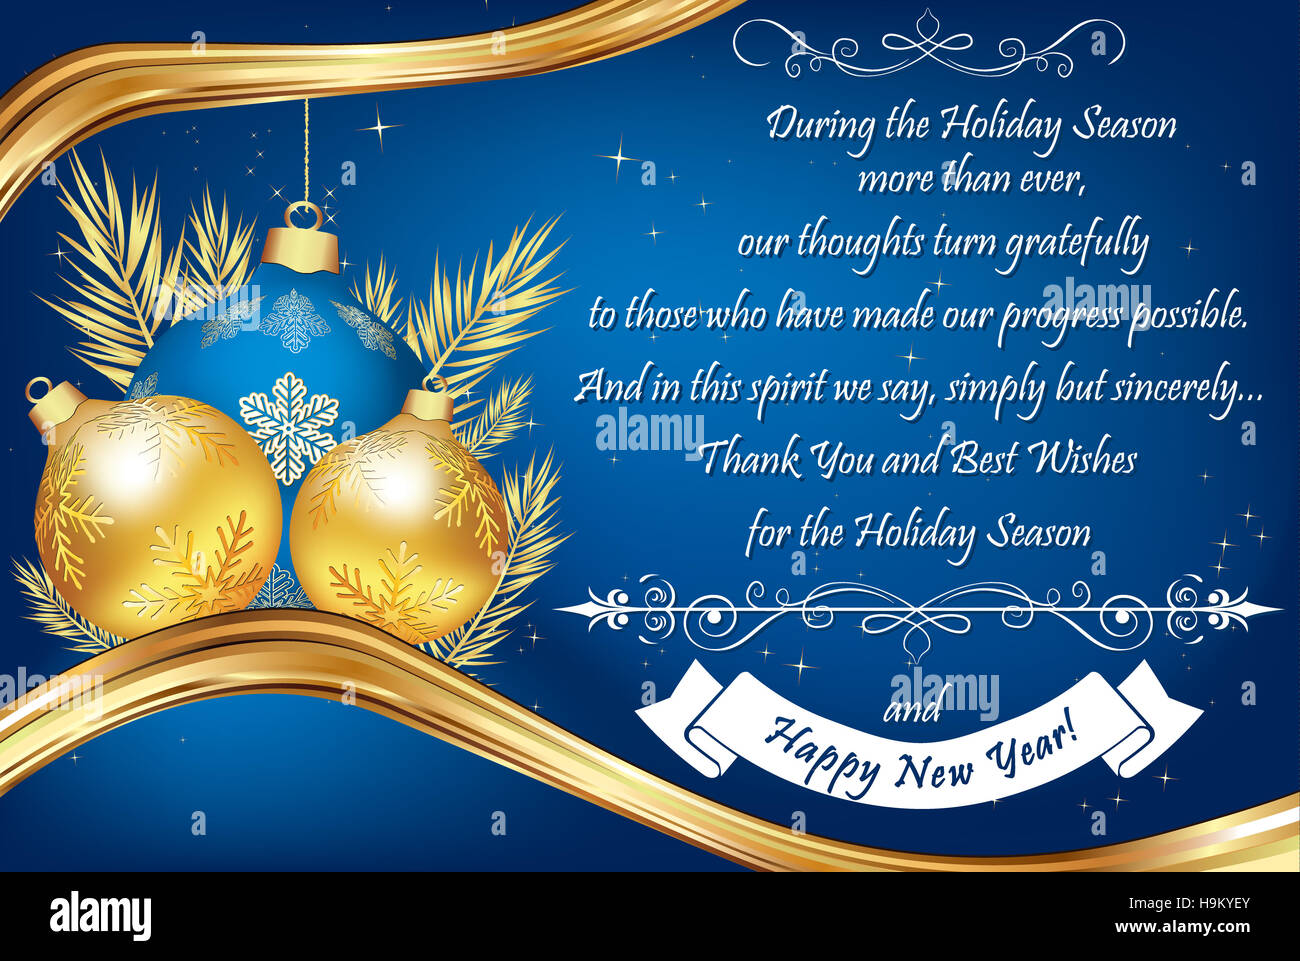 Thank you blue business greeting card for the end of the year thank you blue business greeting card for the end of the year contains a thank you message from company to its staff clients kristyandbryce Image collections